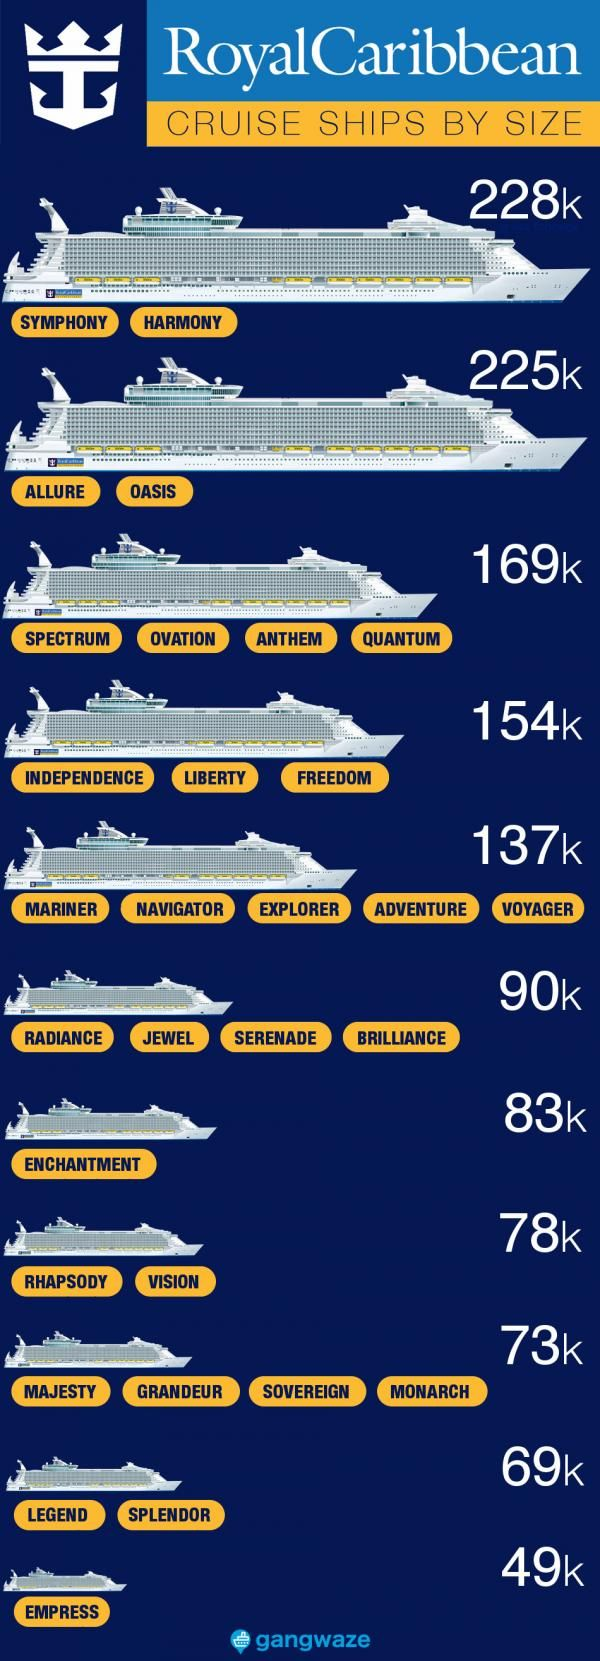 Royal Caribbean Ships By Size 2021 With Comparison Chart Royal Caribbean Ships Royal Caribbean Cruise Lines Royal Caribbean Cruise Ship